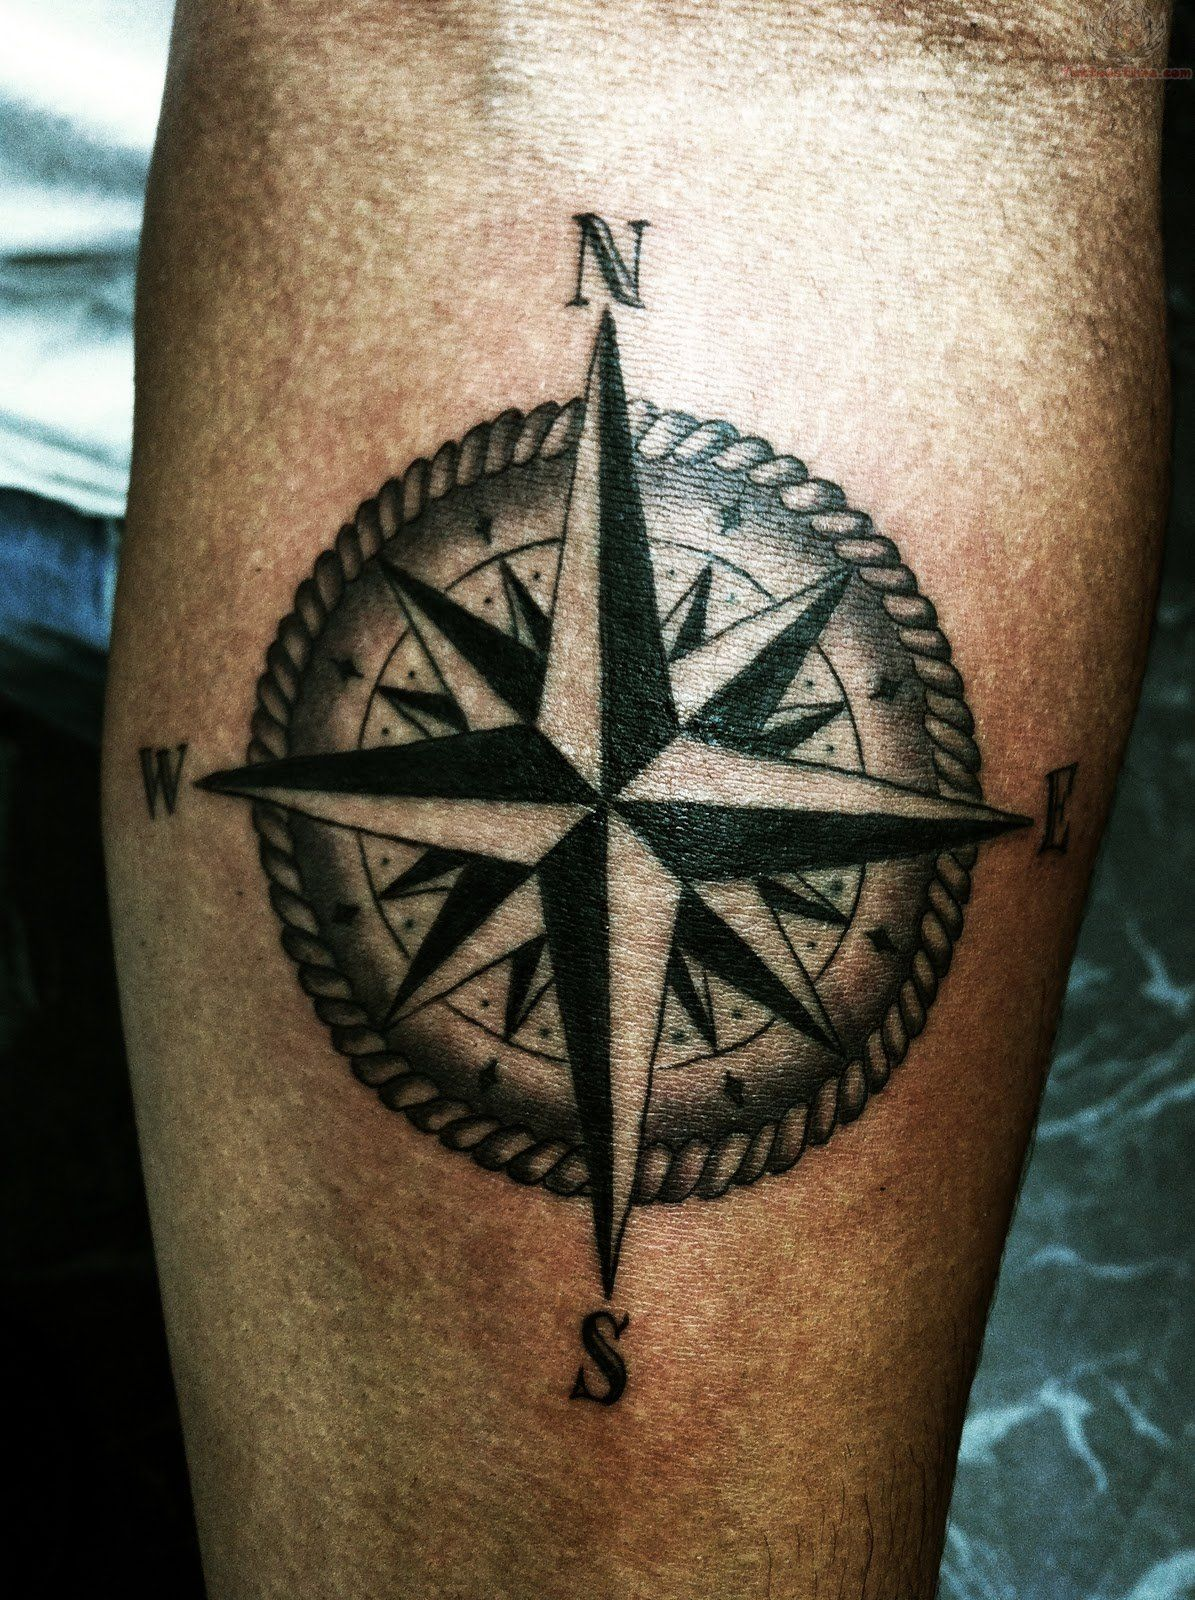 Nautical tattoos designs and ideas page 25 - Nautical Compass Tattoo 2 Jpg Background Better